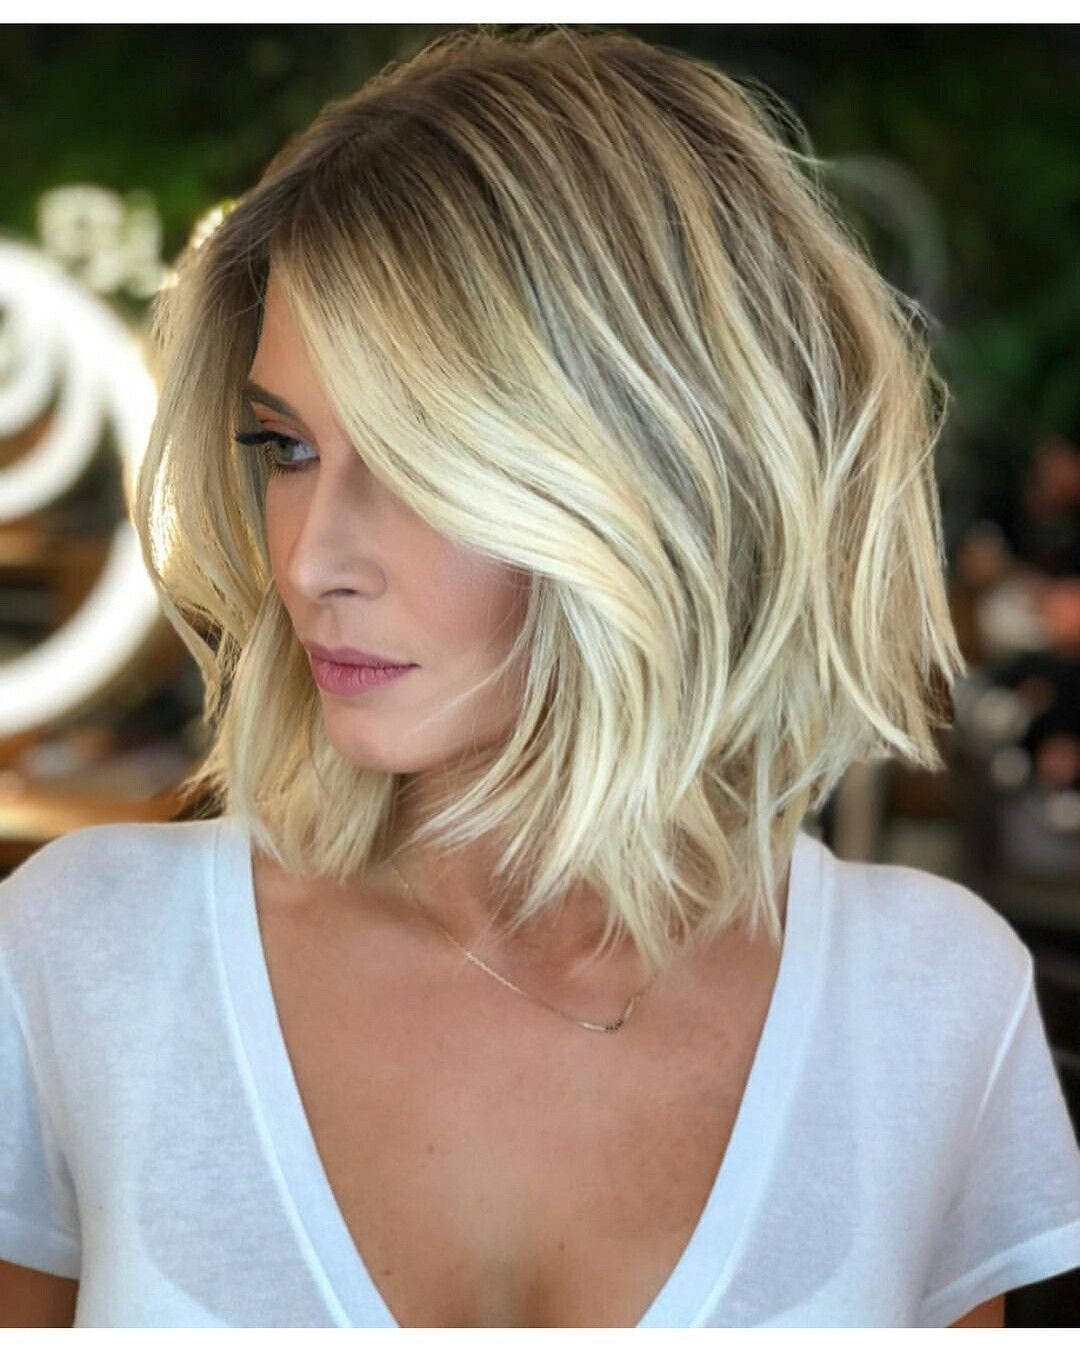 Hairstylesmediumlength Mediumlength Hairstyles Hair Styles Blonde Bob Haircut Long Hair Styles